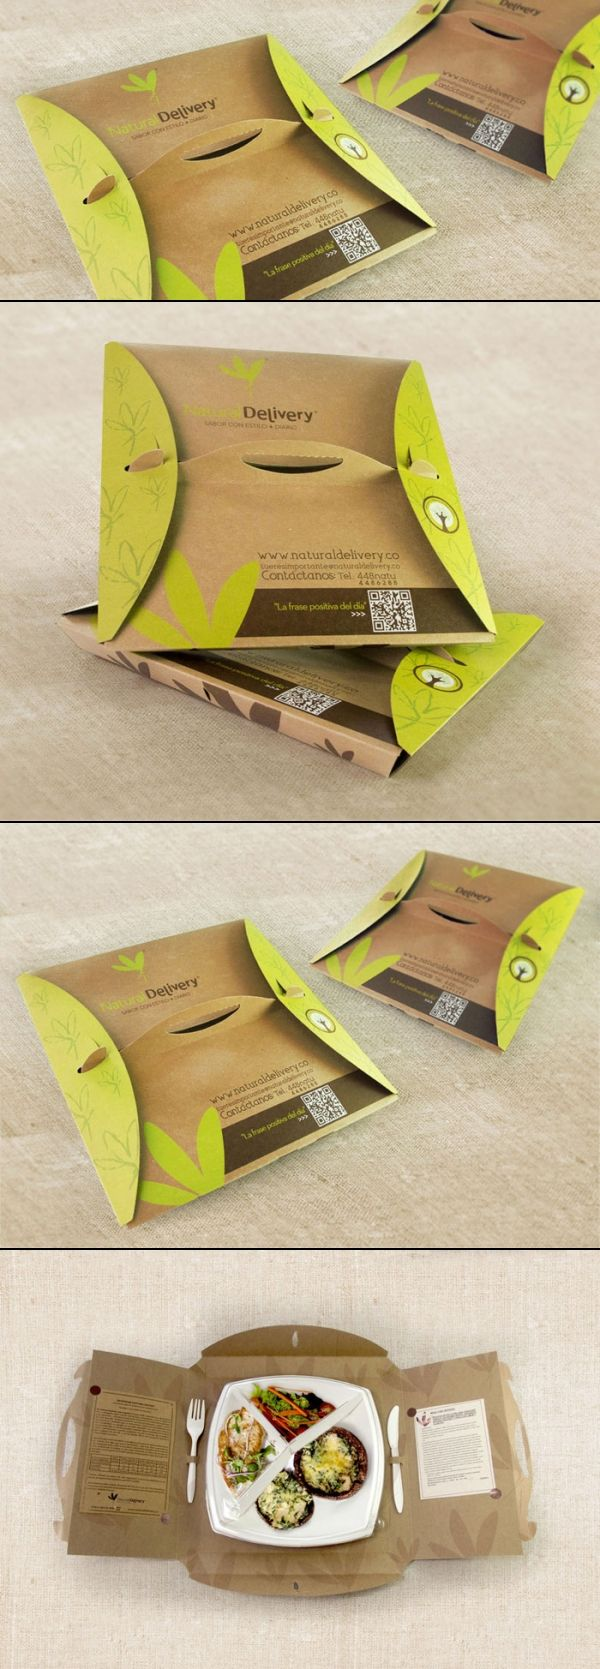 Natural Delivery.An integral packaging design is developed for Natural Delivery, a delivery service of healthy food. The unique structure of the folding box integrates an optimal and safe transport. To limit waste, time and increase ease of use and personal experience, the structure can also be doubled as a plate and a placemat. Cool idea #packaging PD